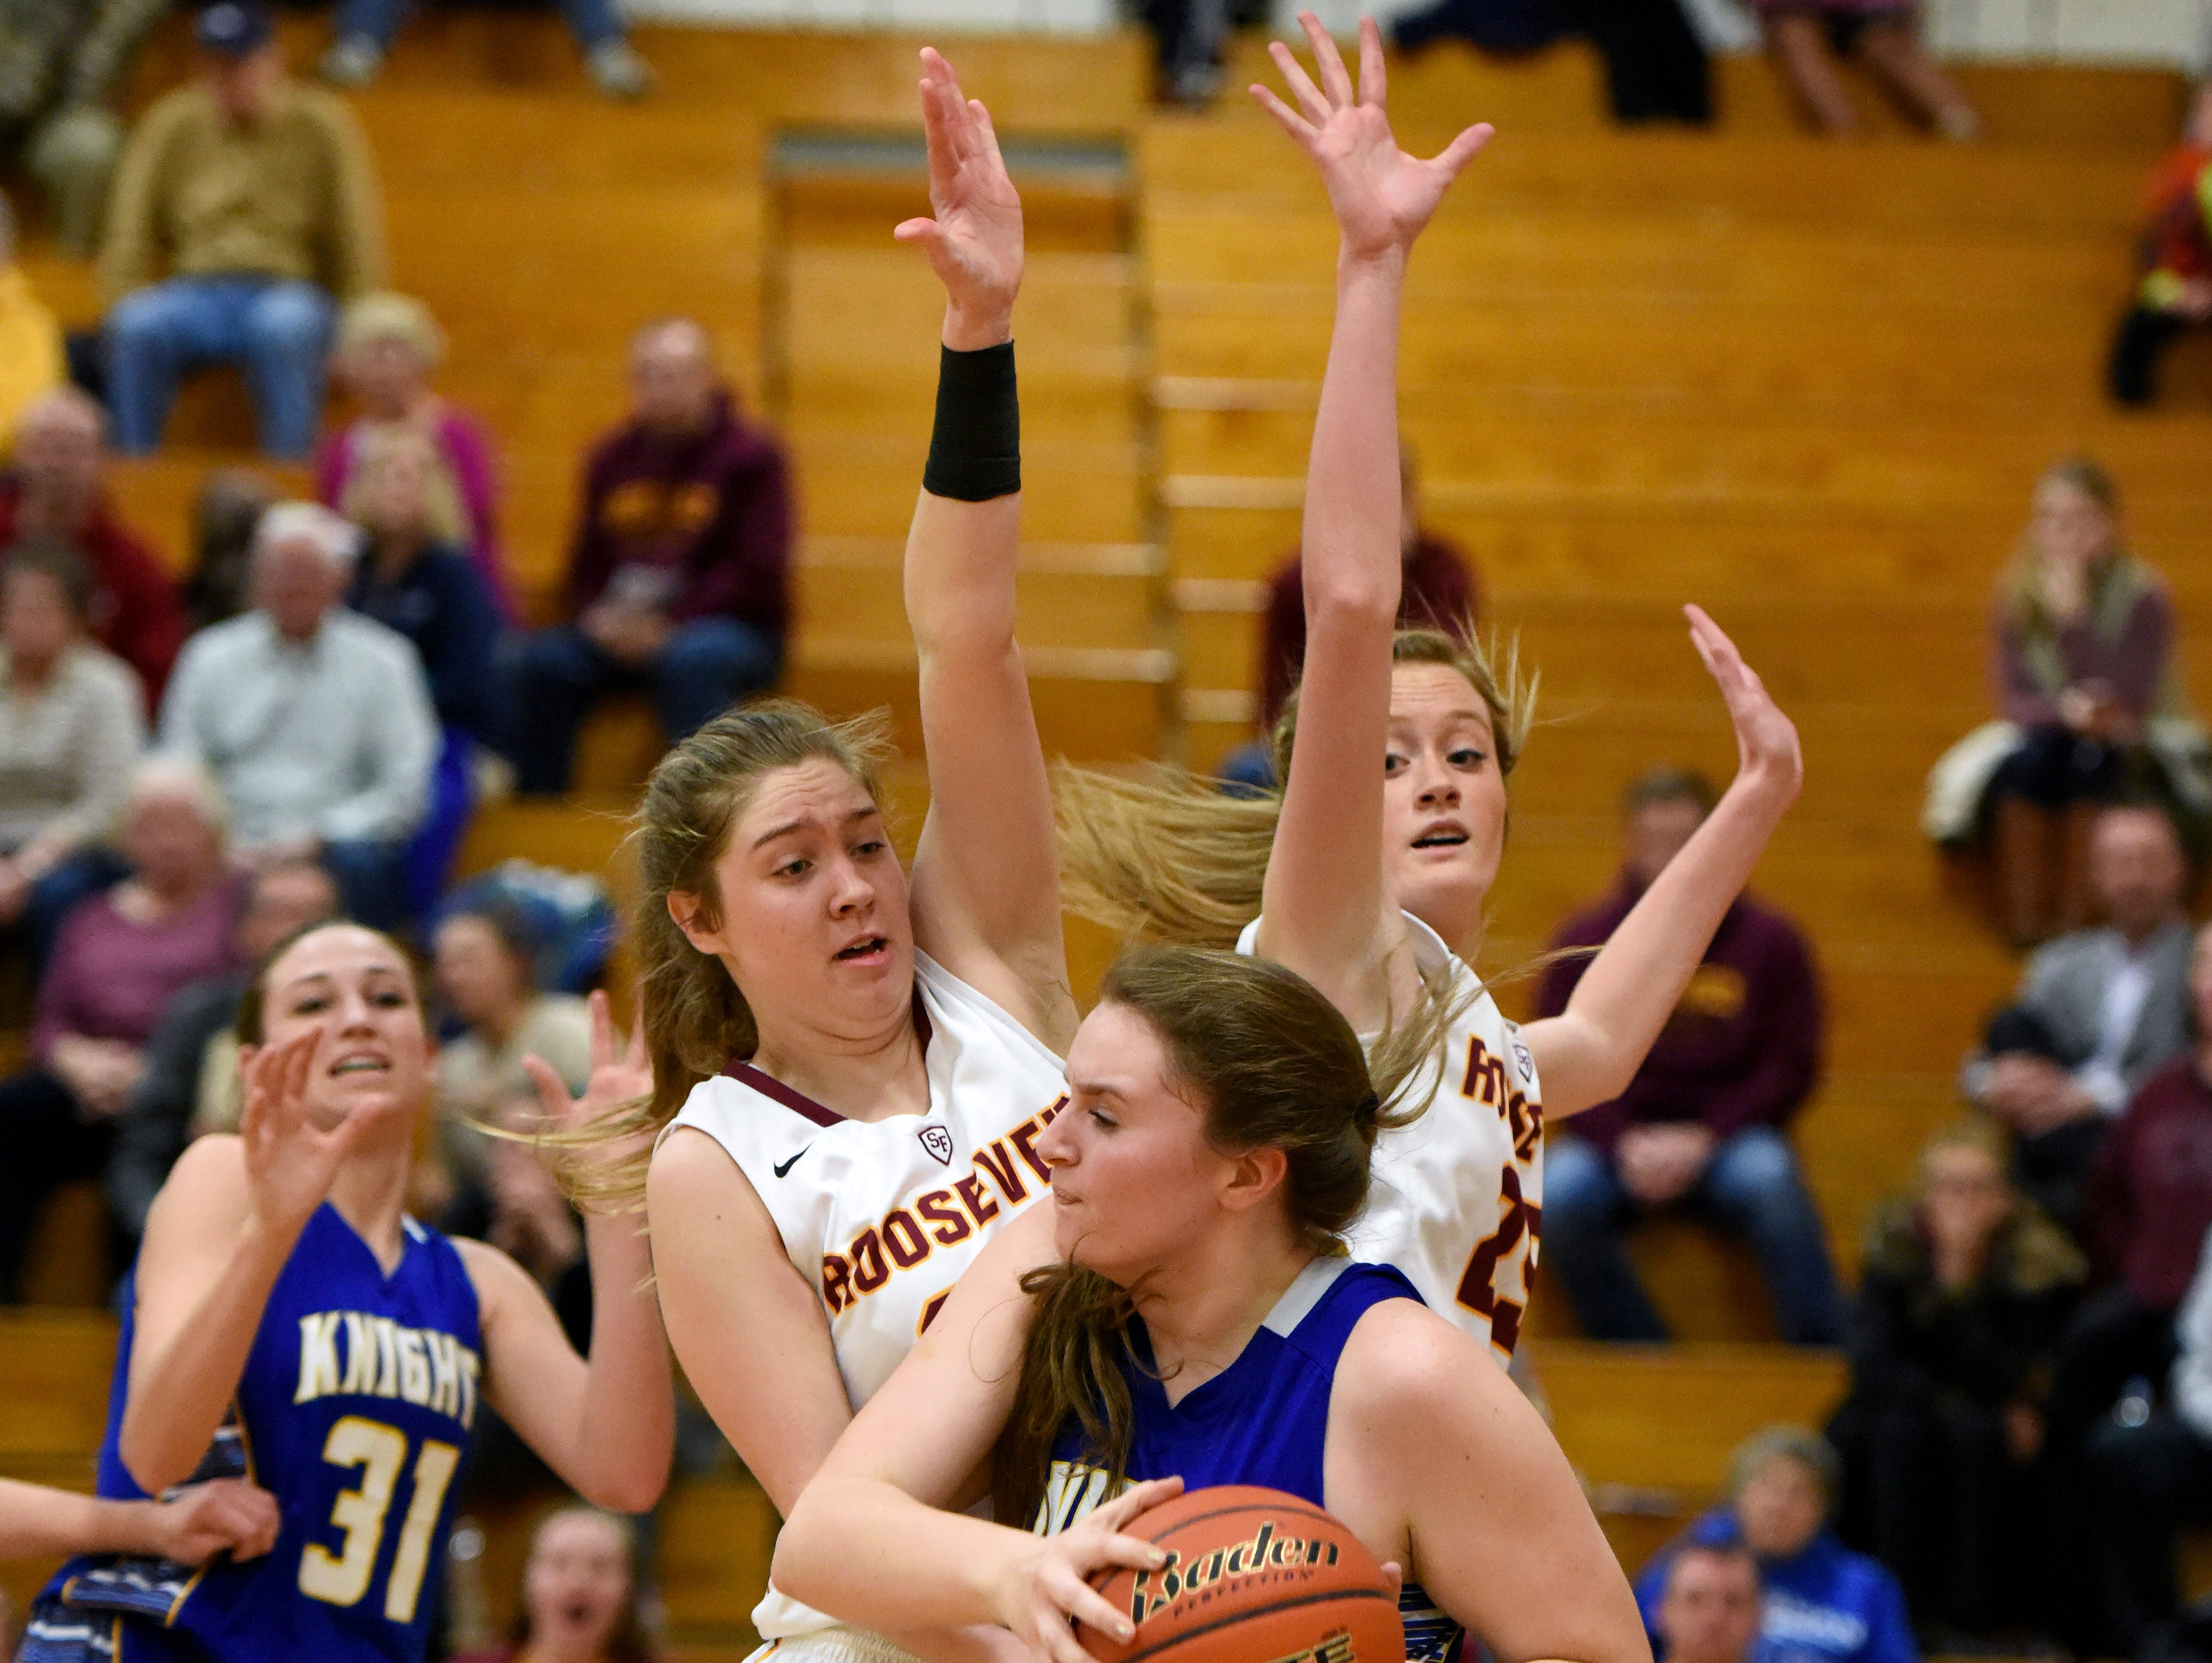 O'Gorman's Courtney Baruth looks to pass around Roosevelt's Katie Johnson (33) and Tahia Mitzel (23) during their game Thursday at Roosevelt High School.